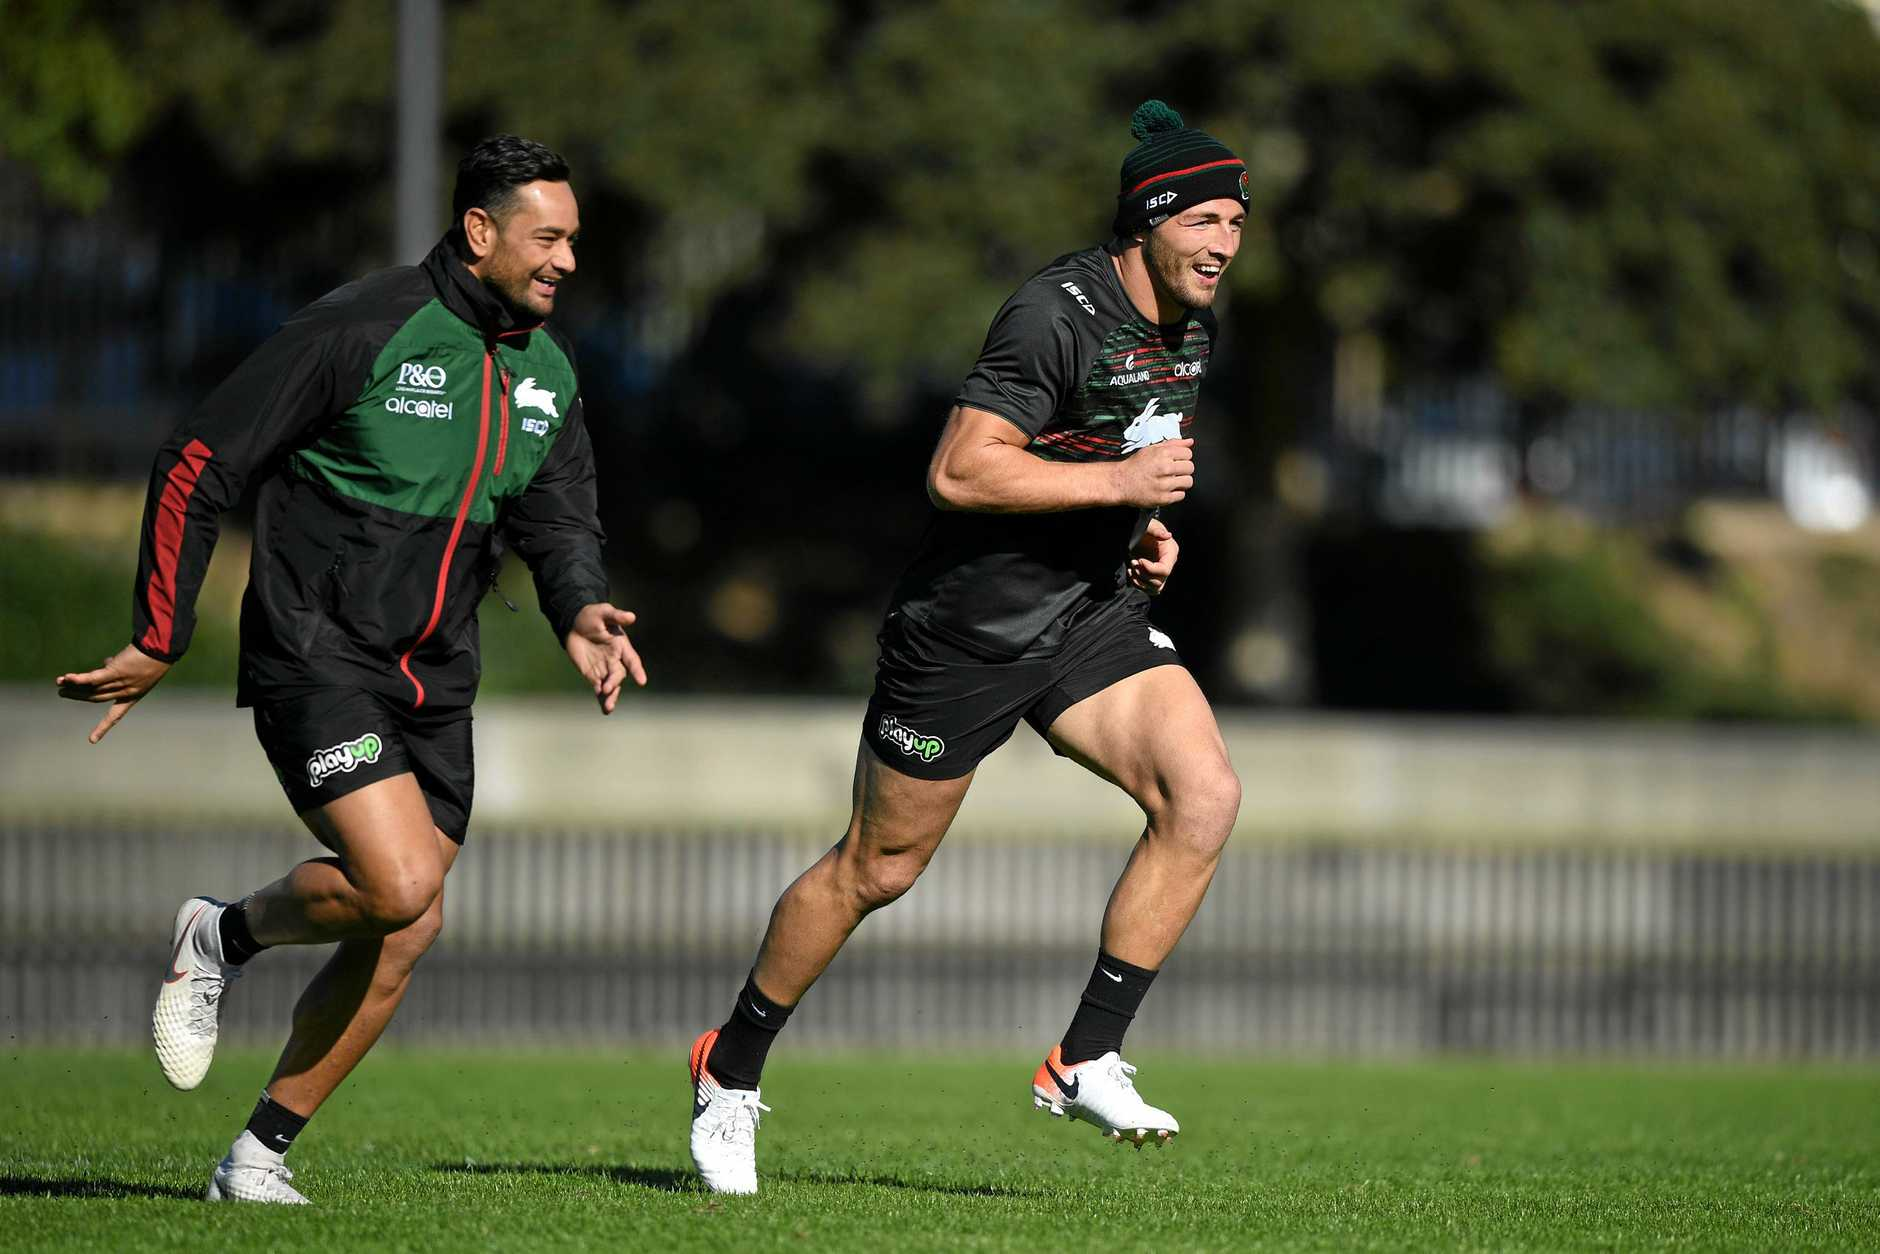 South Sydney Rabbitohs players John Sutton (left) and Sam Burgess are seen during a team training session at Redfern Oval in Sydney, Tuesday, May 28, 2019.  (AAP Image/Joel Carrett) NO ARCHIVING